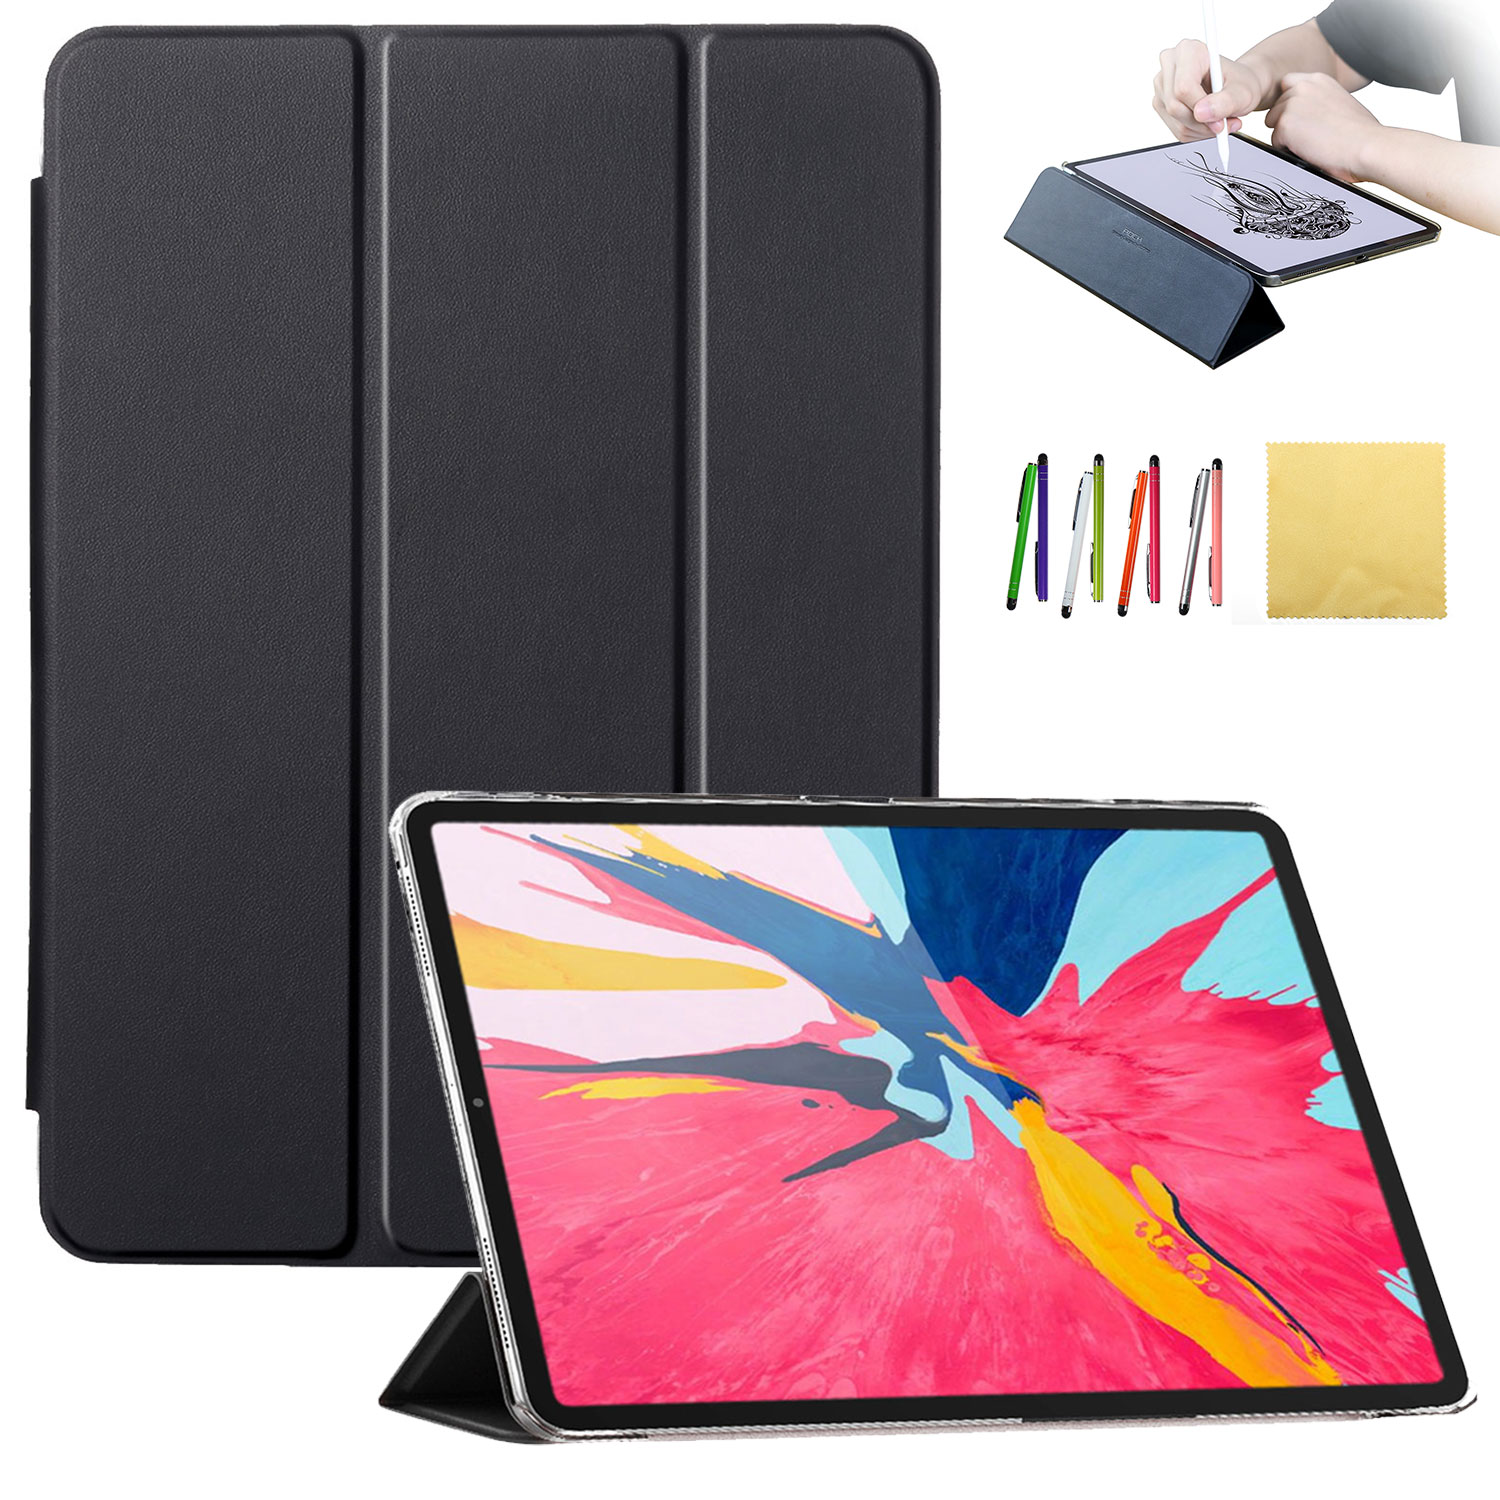 """Goodest Case for iPad Pro 12.9"""" Case 2018 3rd Generation - Slim Stand Smart Shell with Auto Wake/Sleep + Rugged Translucent Back Cover Support Apple Pencil Attechment for Apple iPad Pro 12.9, Black"""